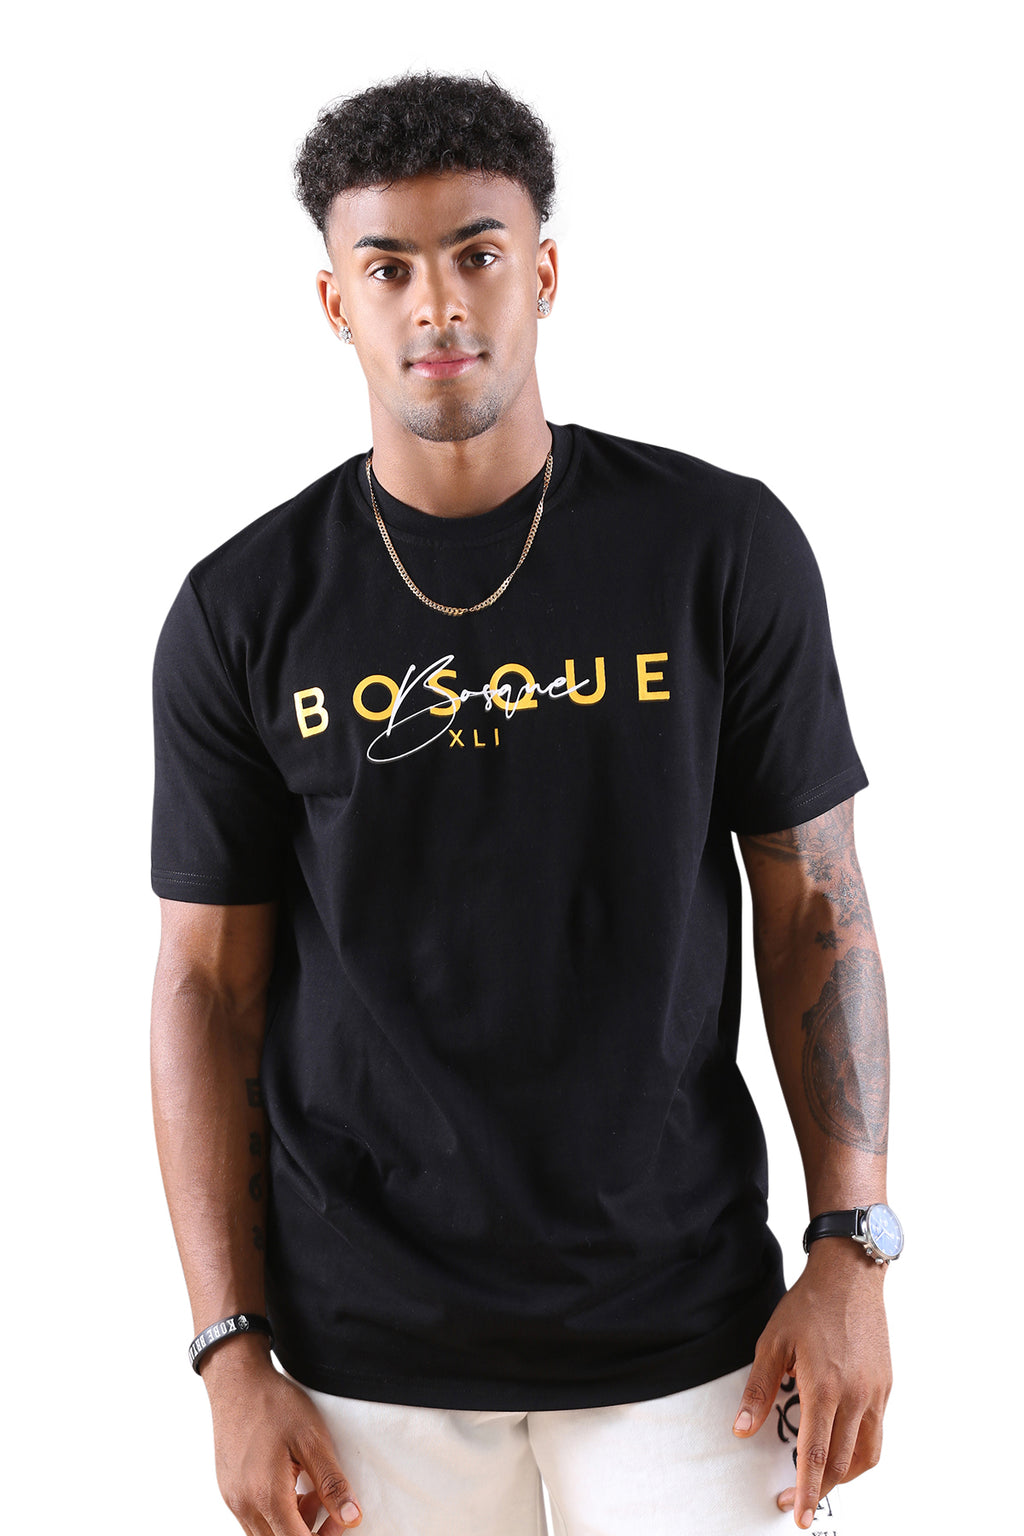 Bosque Suave Tee Black/Gold